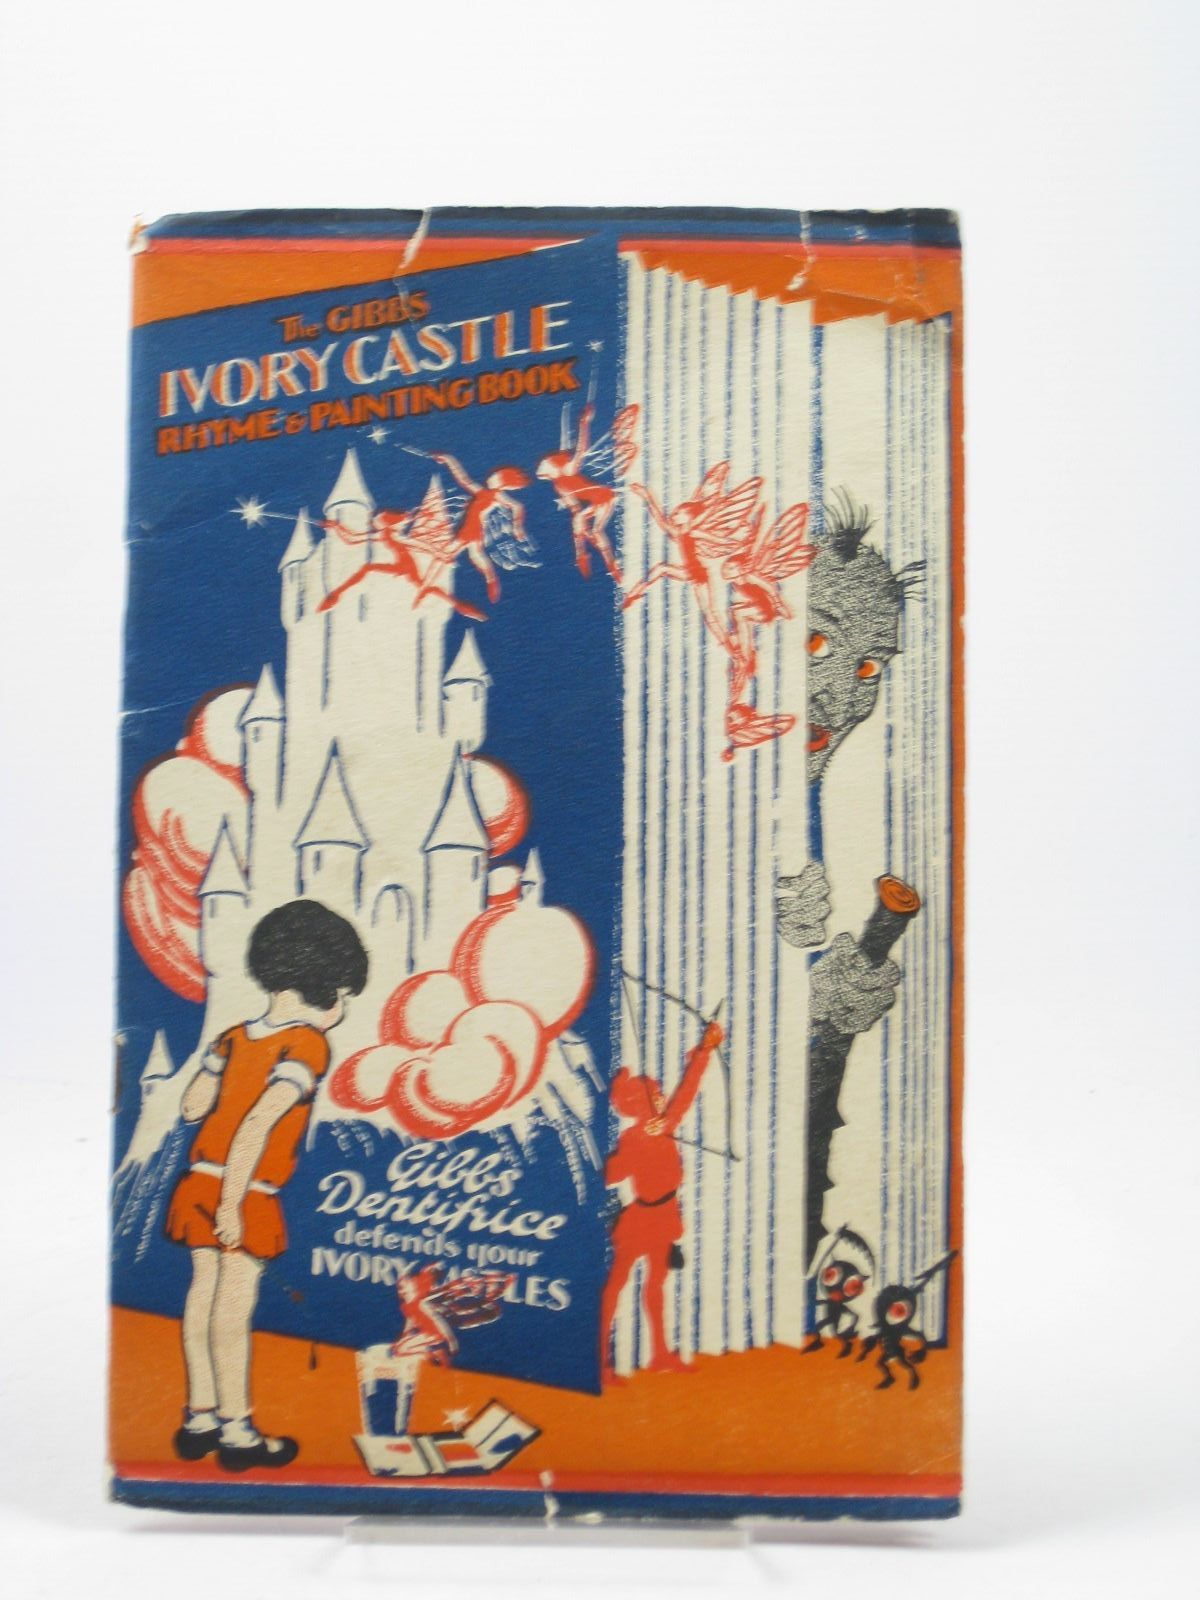 Photo of THE IVORY CASTLE RHYME AND PAINTING BOOK published by D. & W. Gibbs Ltd. (STOCK CODE: 1502436)  for sale by Stella & Rose's Books